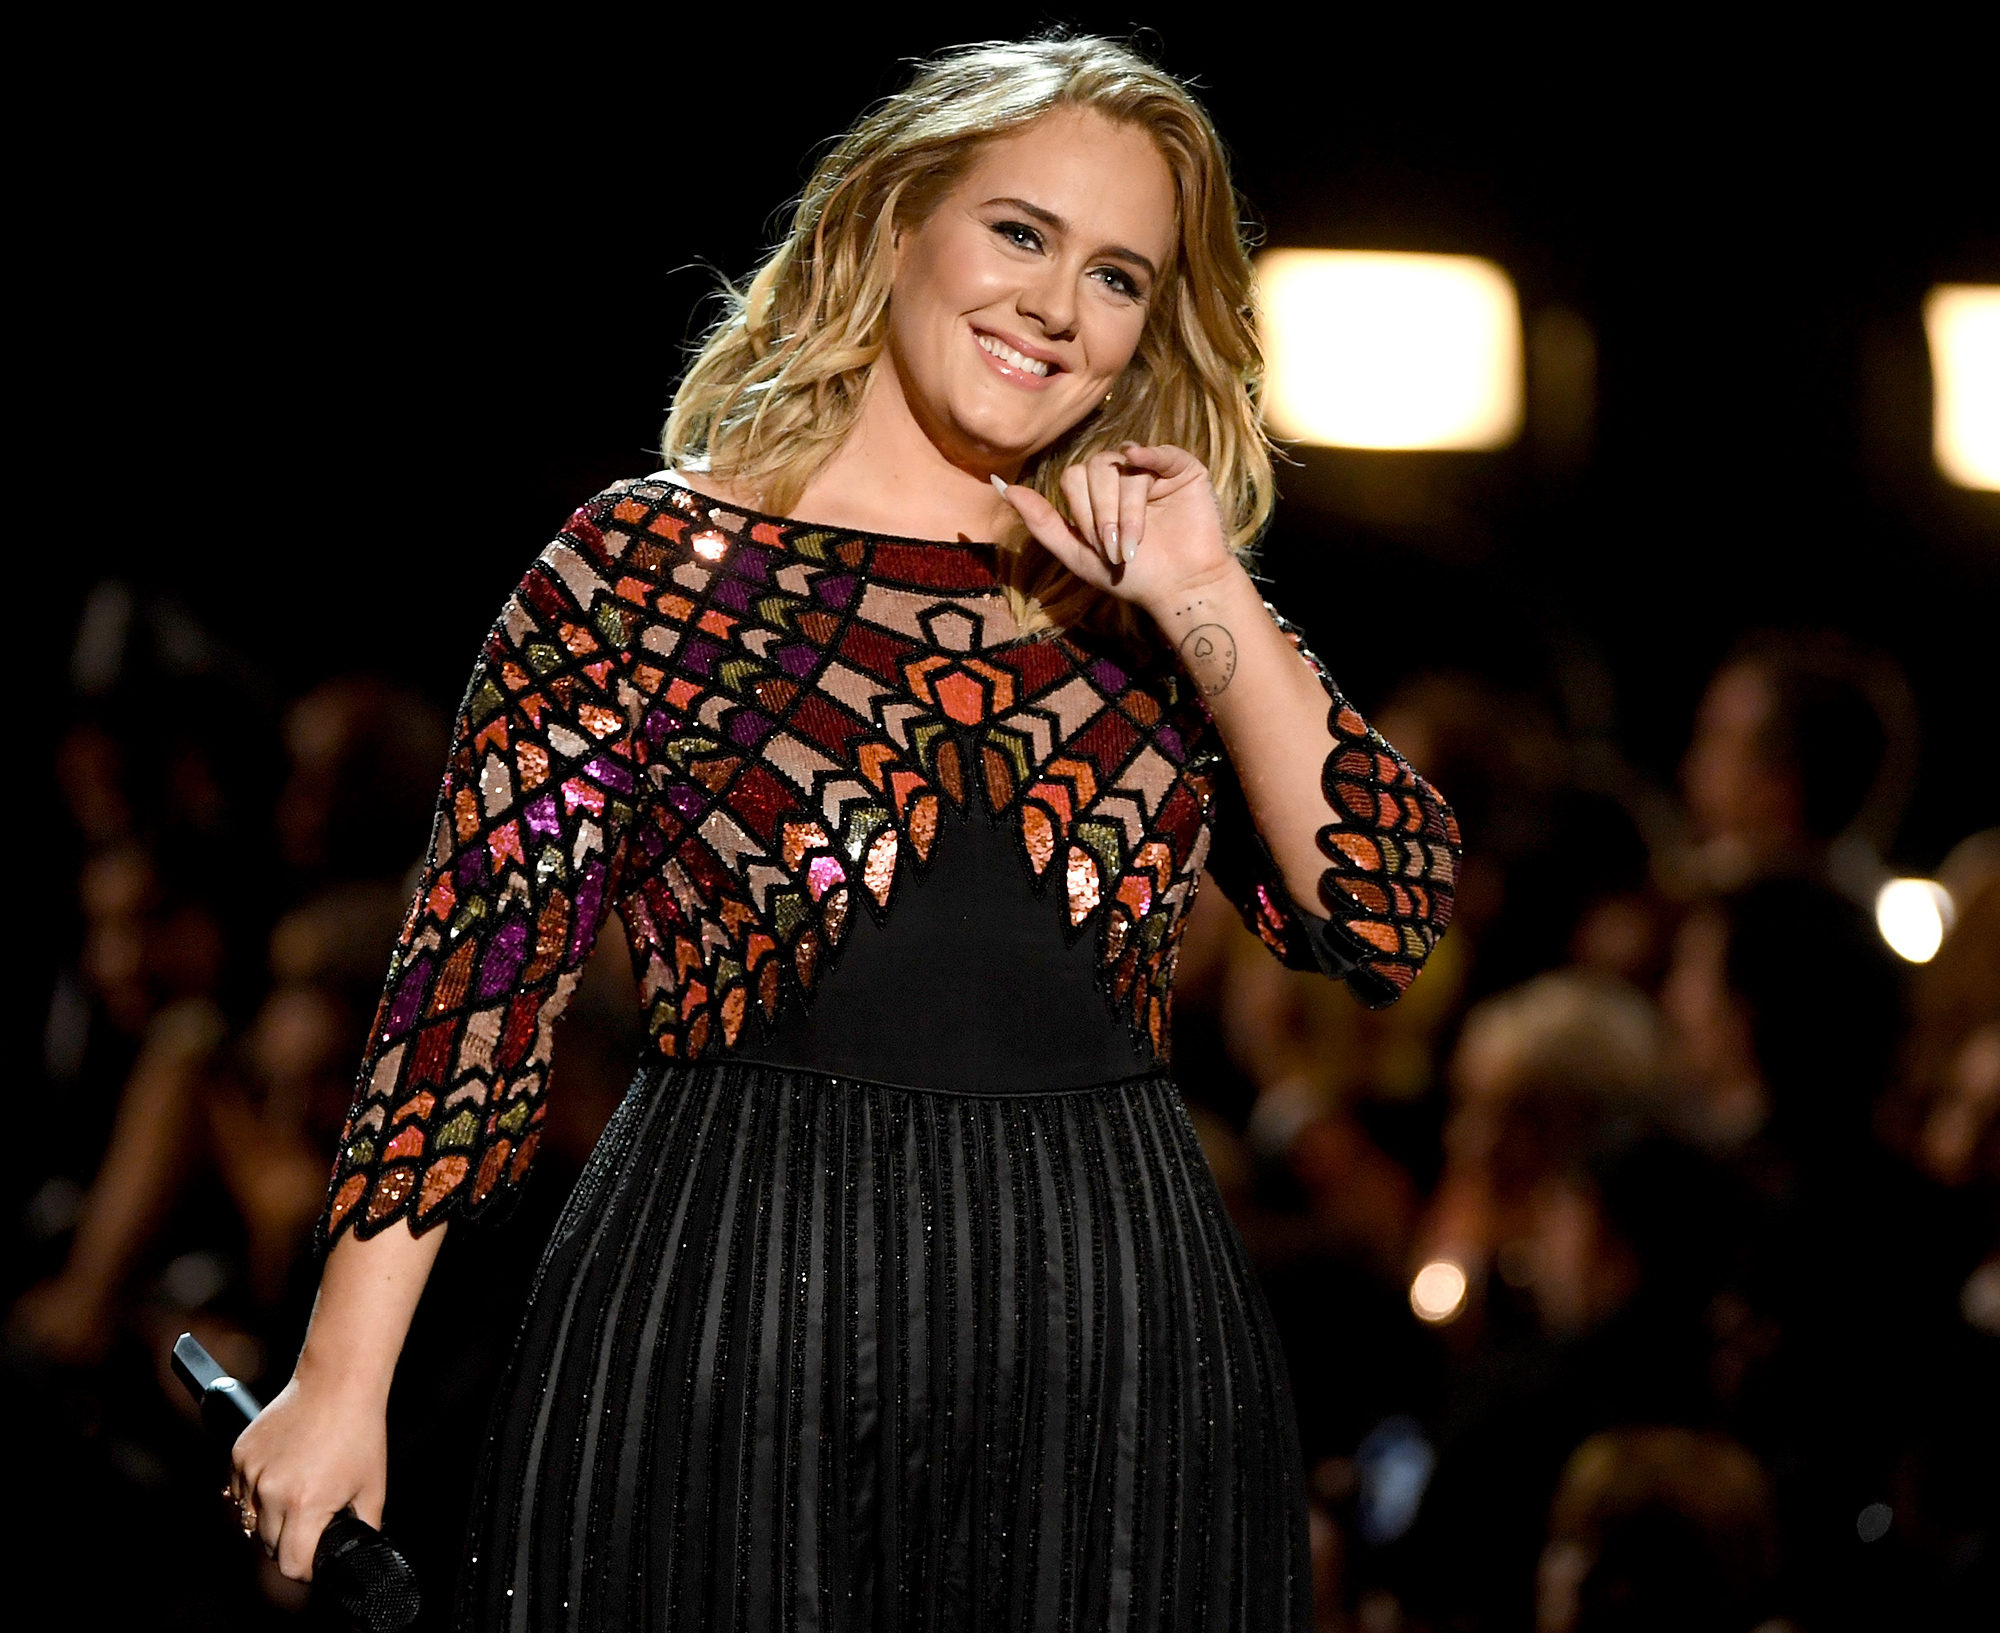 LOS ANGELES, CA - FEBRUARY 12: Recording artist Adele performs onstage during The 59th GRAMMY Awards at STAPLES Center on February 12, 2017 in Los Angeles, California. (Photo by Kevin Winter/Getty Images for NARAS)